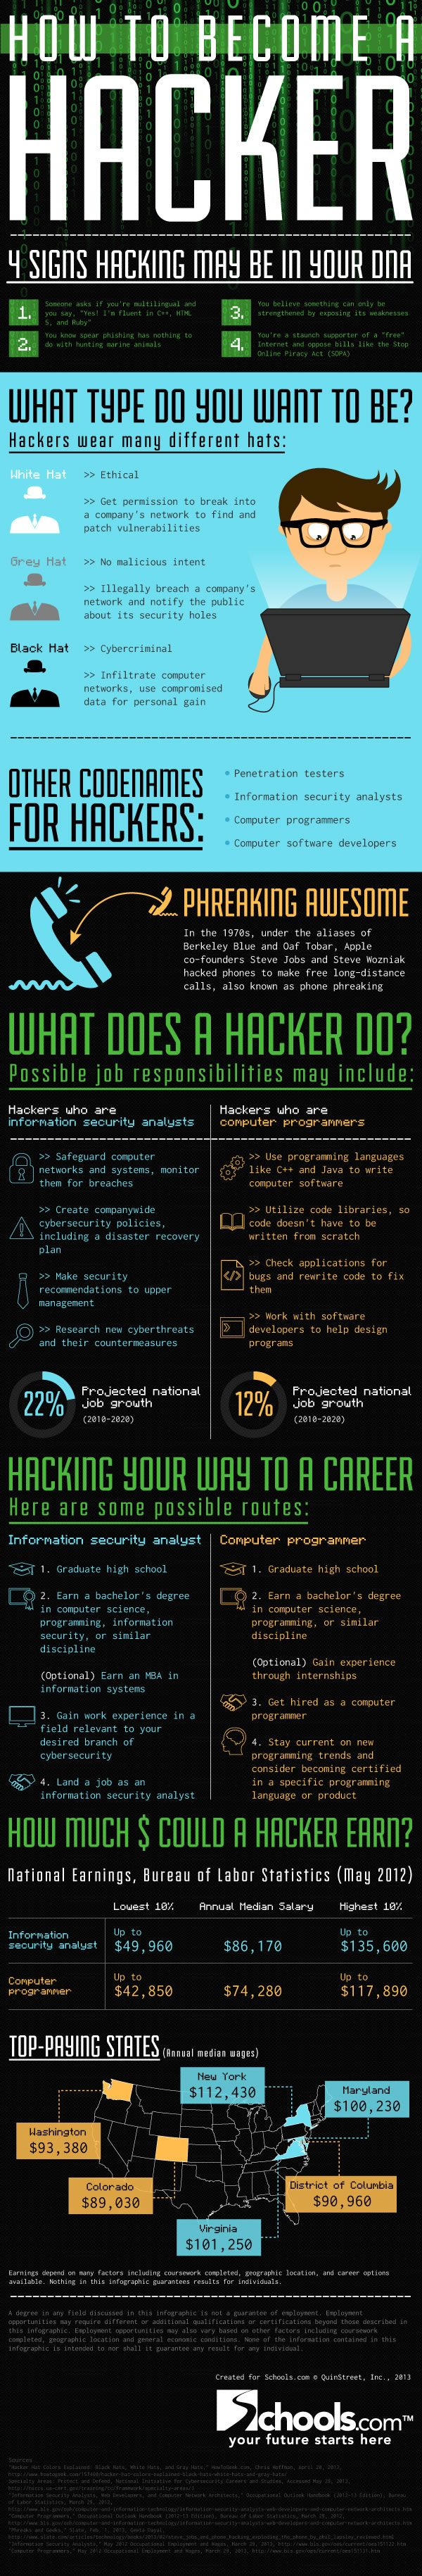 White hat, grey hat, or black hat: How To Become a Hacker (Infographic). #ITGSwww.pyrotherm.gr FIRE PROTECTION ΠΥΡΟΣΒΕΣΤΙΚΑ 36 ΧΡΟΝΙΑ ΠΥΡΟΣΒΕΣΤΙΚΑ 36 YEARS IN FIRE PROTECTION FIRE - SECURITY ENGINEERS & CONTRACTORS REFILLING - SERVICE - SALE OF FIRE EXTIN